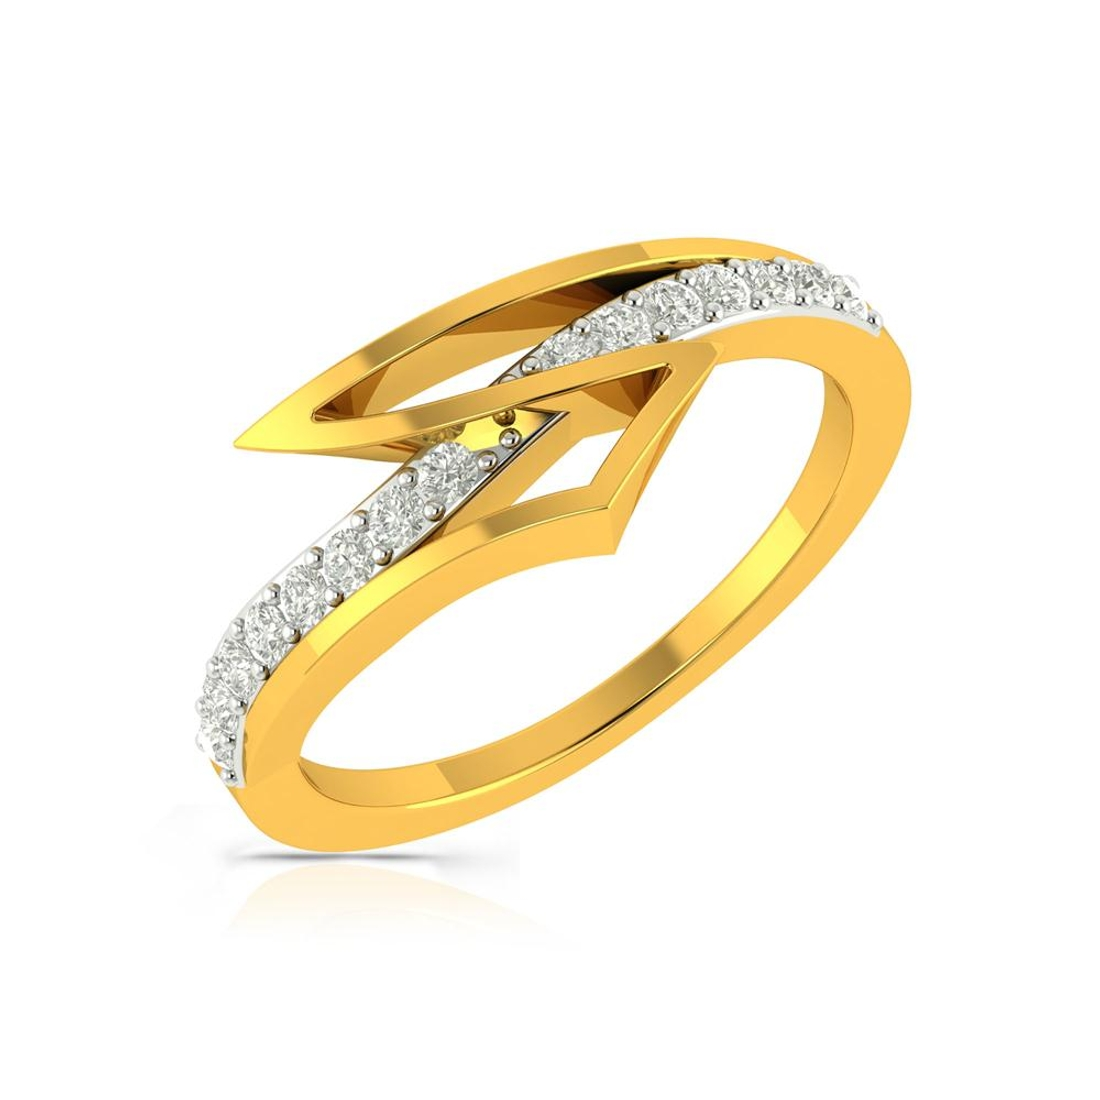 Buy Charu Jewels Diamond Ladies Ring CJLR0348 Online in India